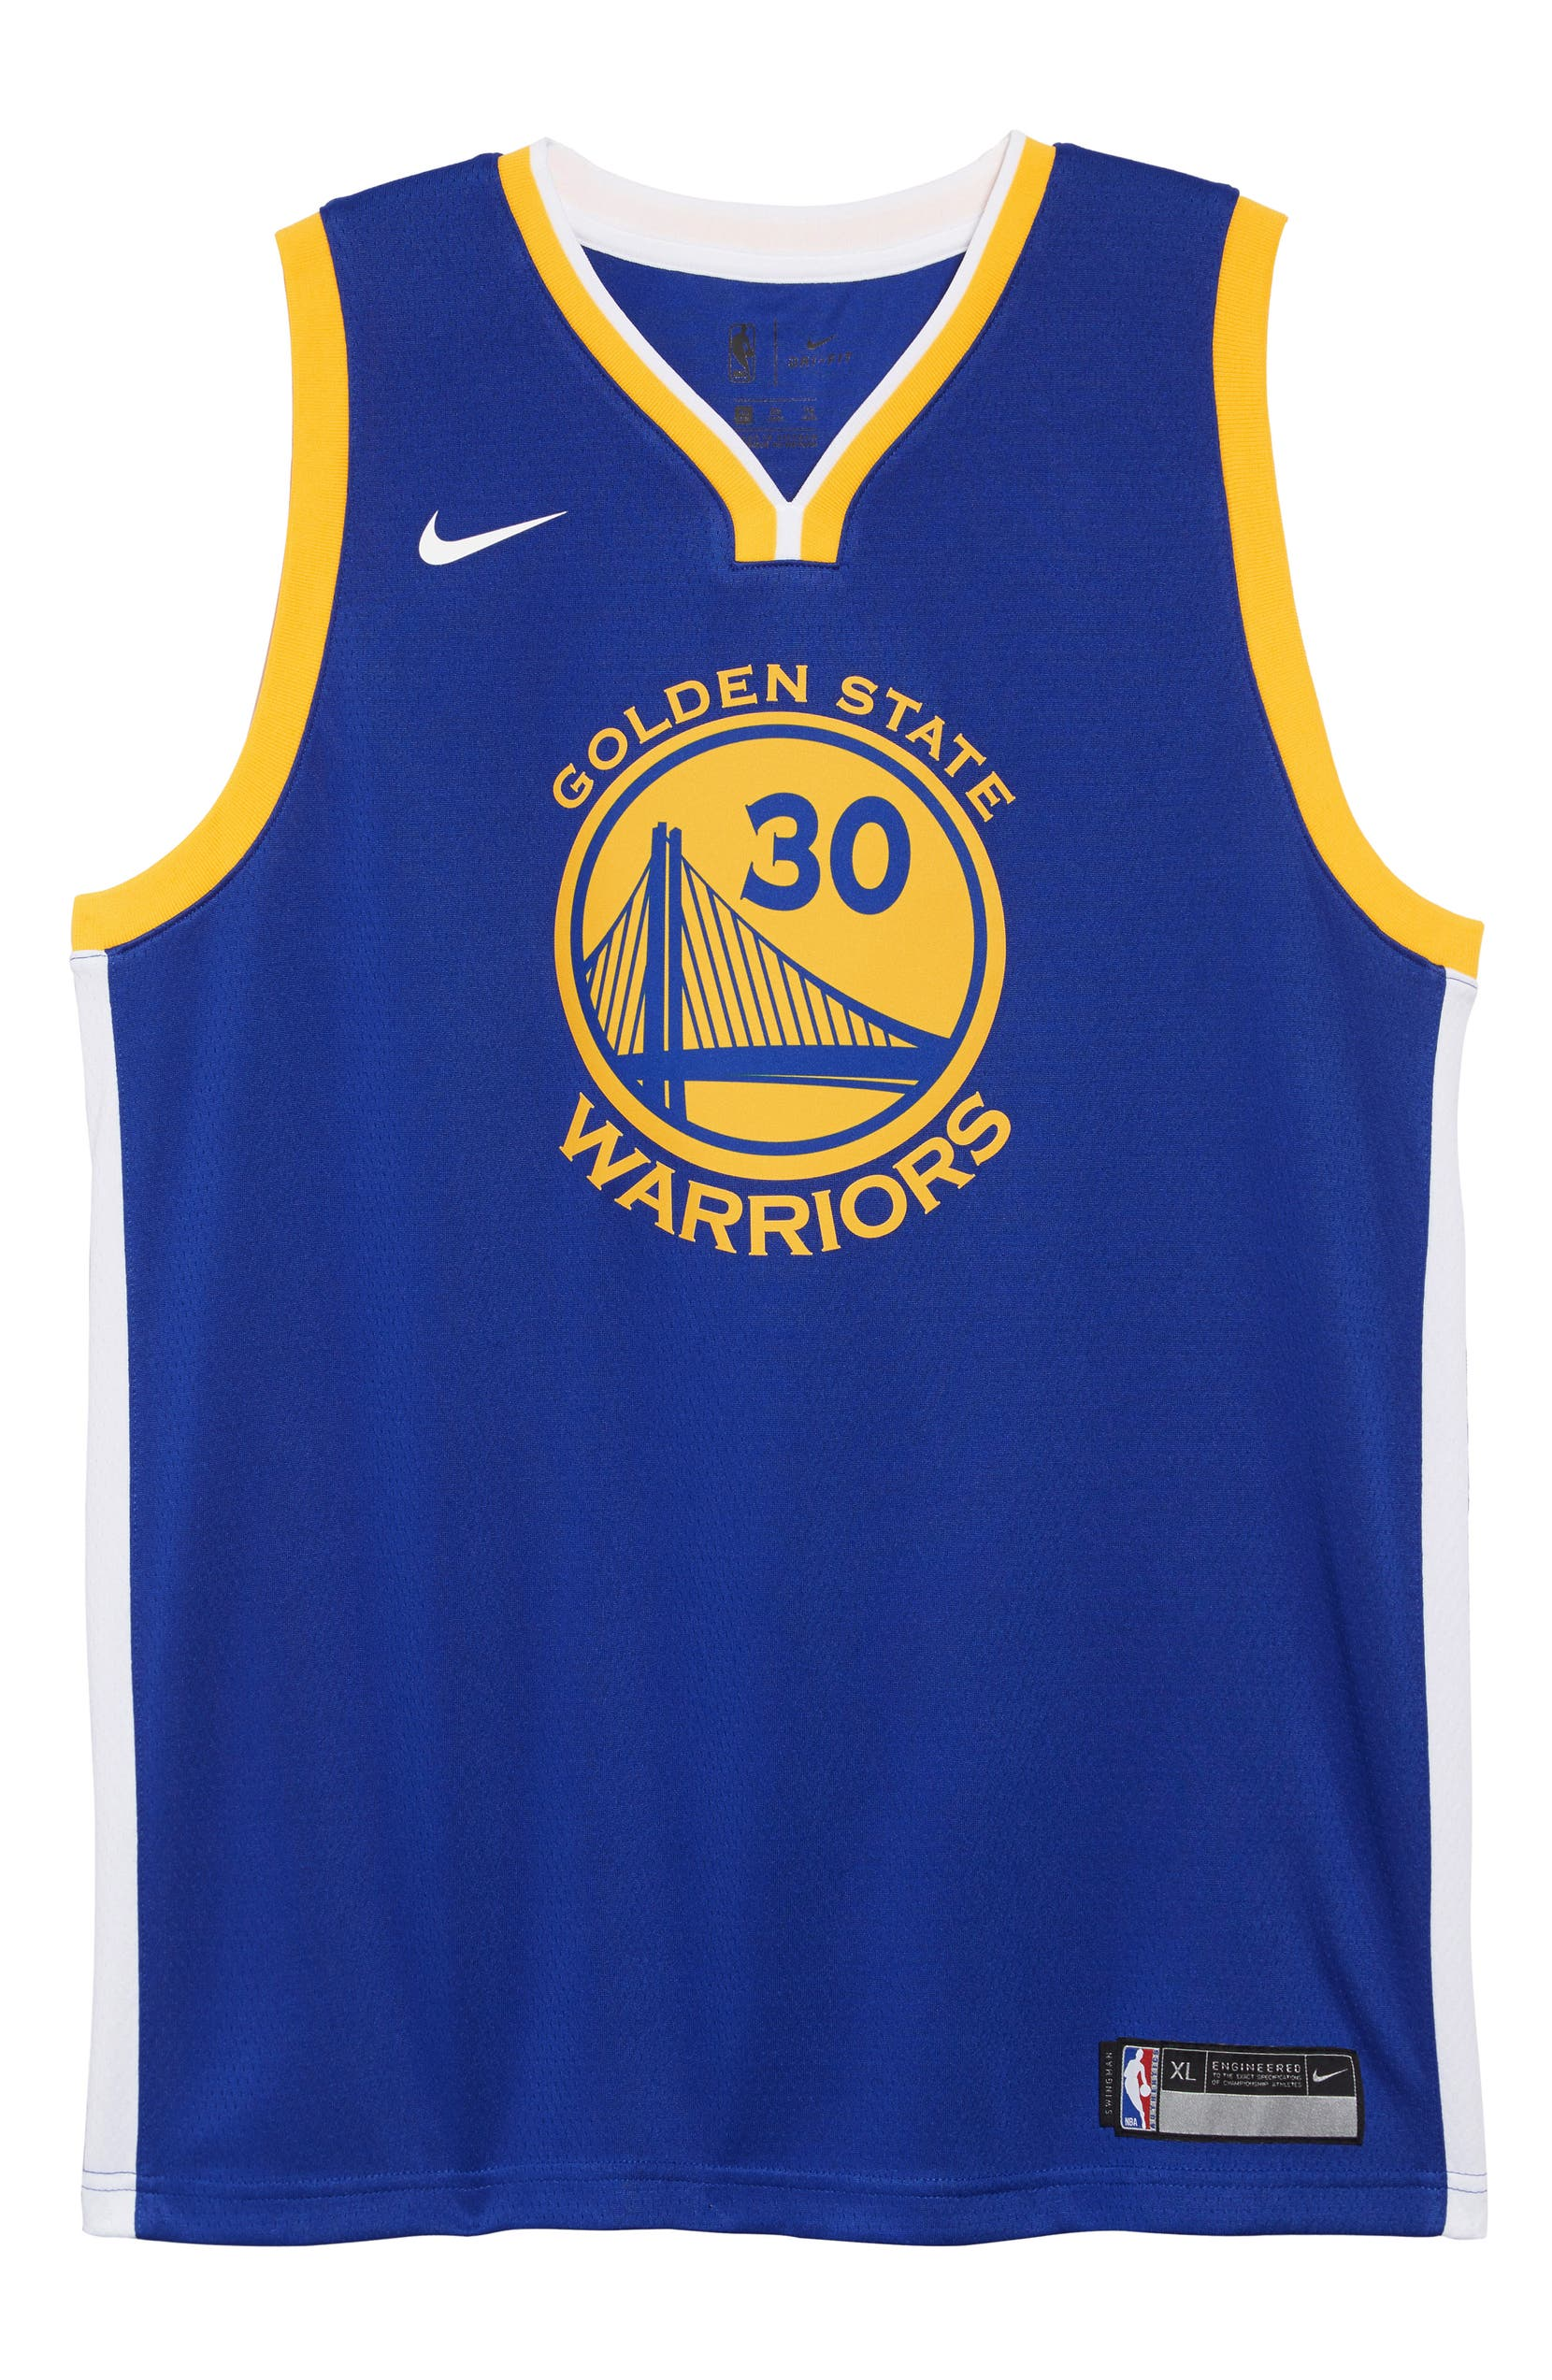 the best attitude 739ac 49f11 Golden State Warriors Stephen Curry Basketball Jersey